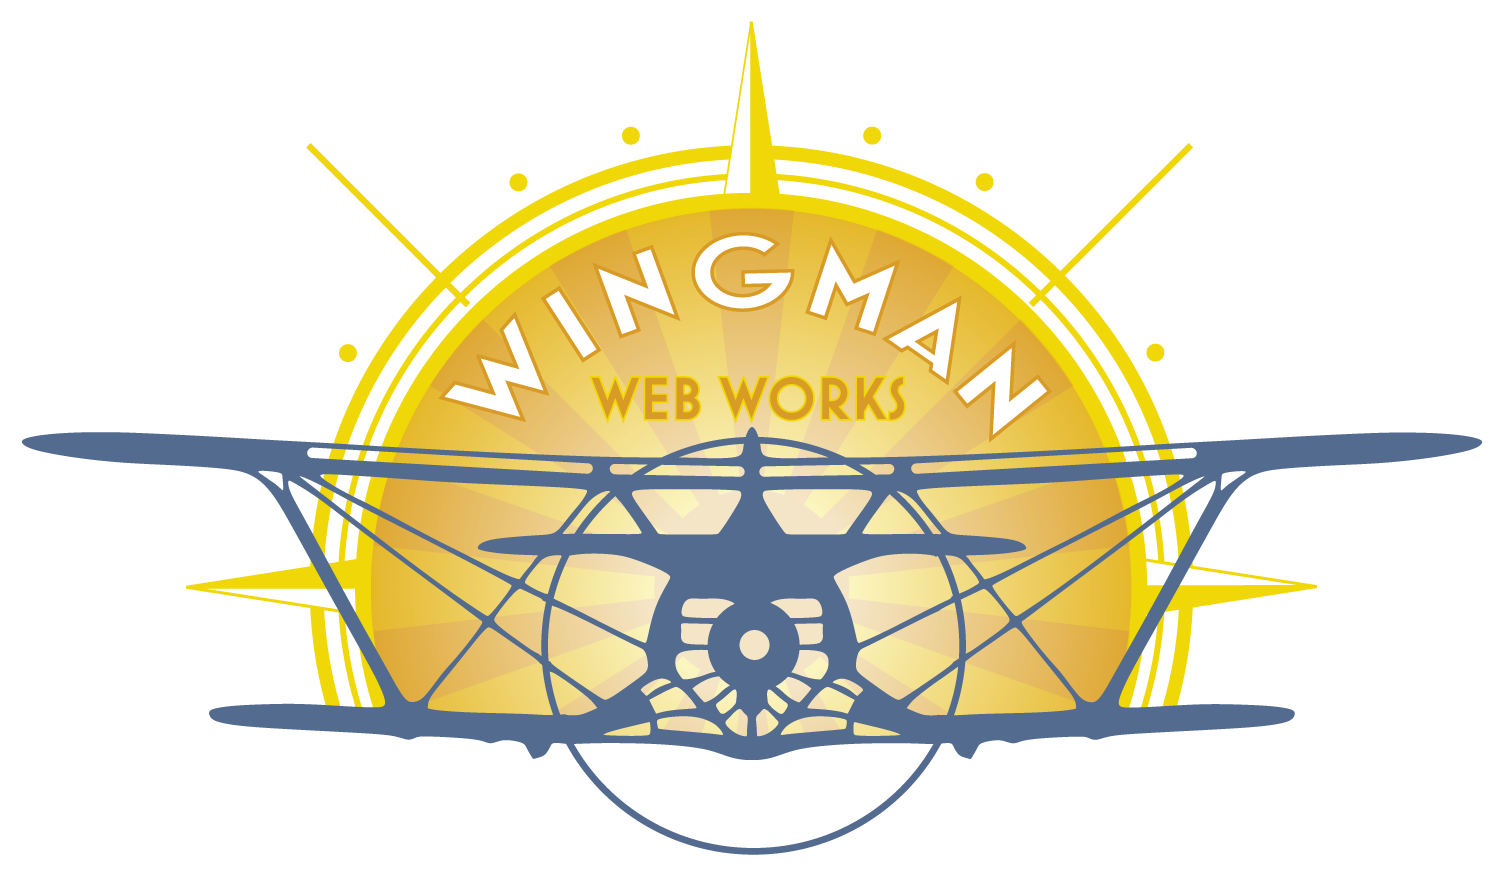 Wingman Web Works